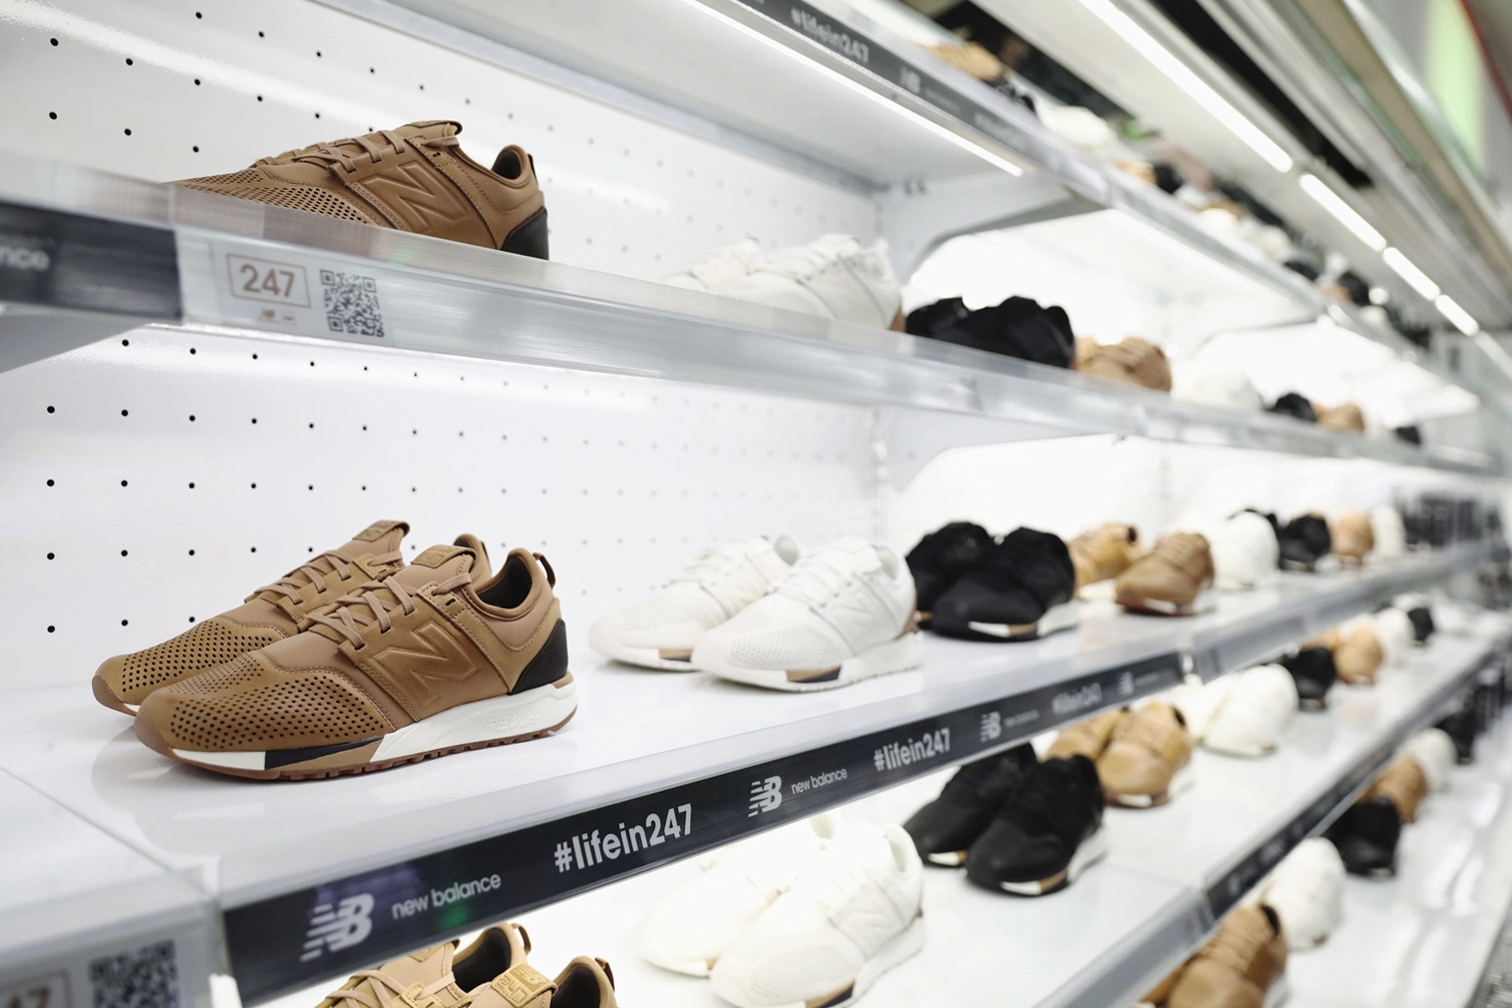 new balance 247 luxe sneakers